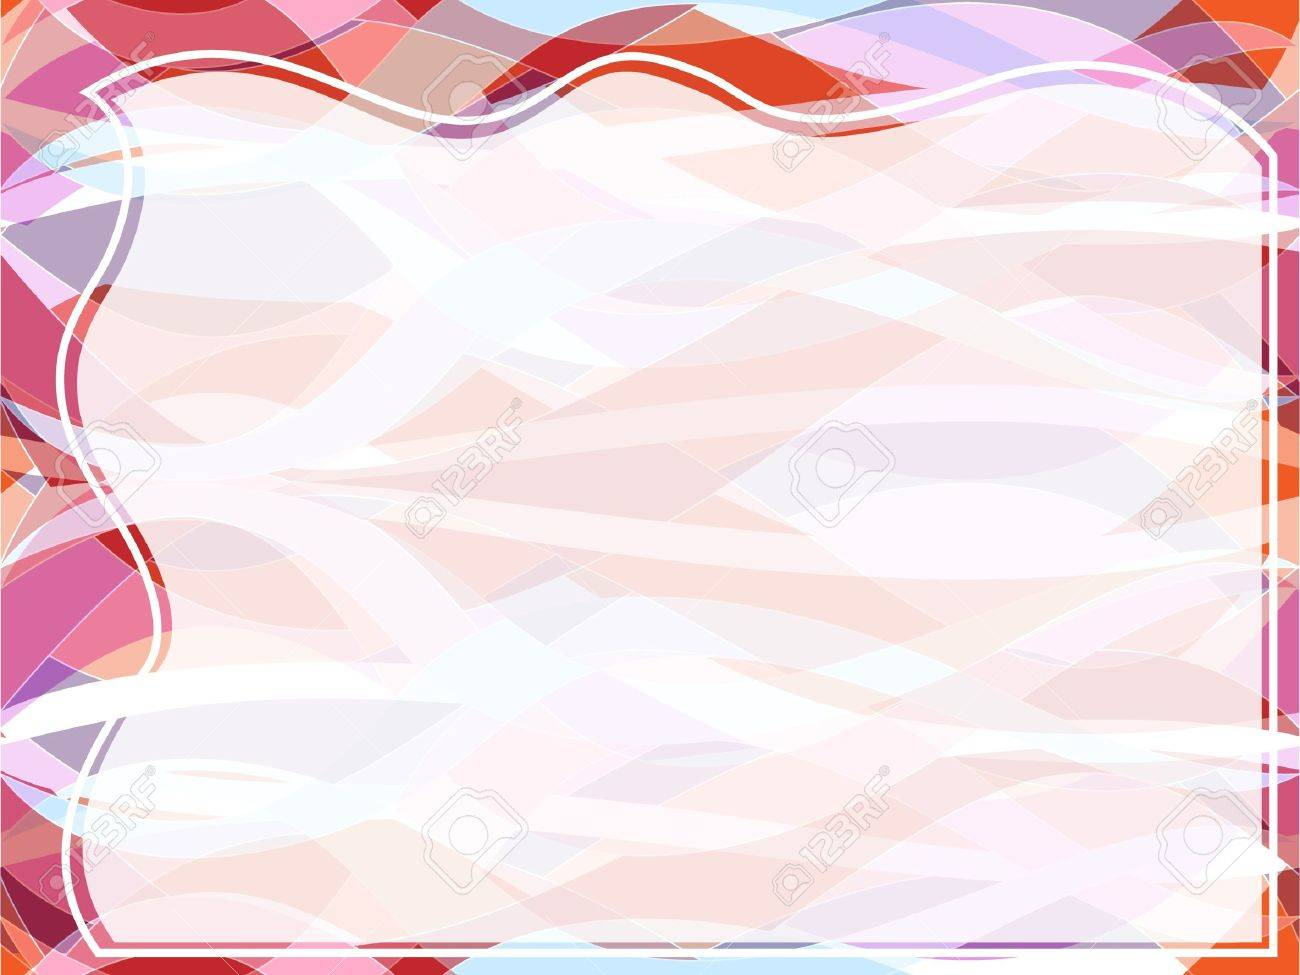 Fun reto style seamless wavy pattern in shades of red, pink, orange and white with transparencies and copy space on blank tile, perfect slide background, frame or border. Stock Vector - 10516448